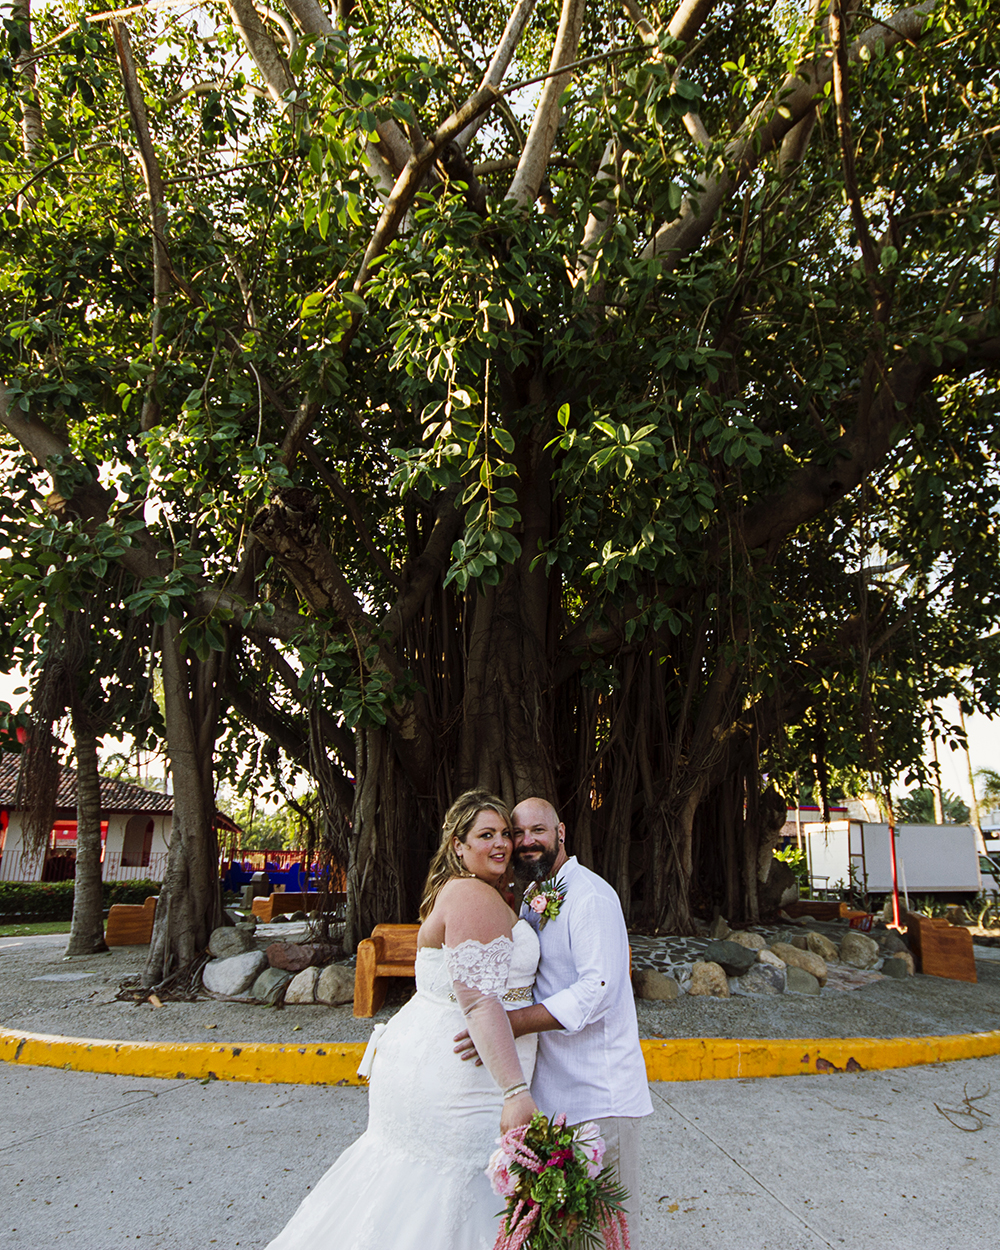 Puerto Vallarta Destination Wedding Photographer | Bucerias Destination Wedding Photographer | Royal Decameron Wedding Photography